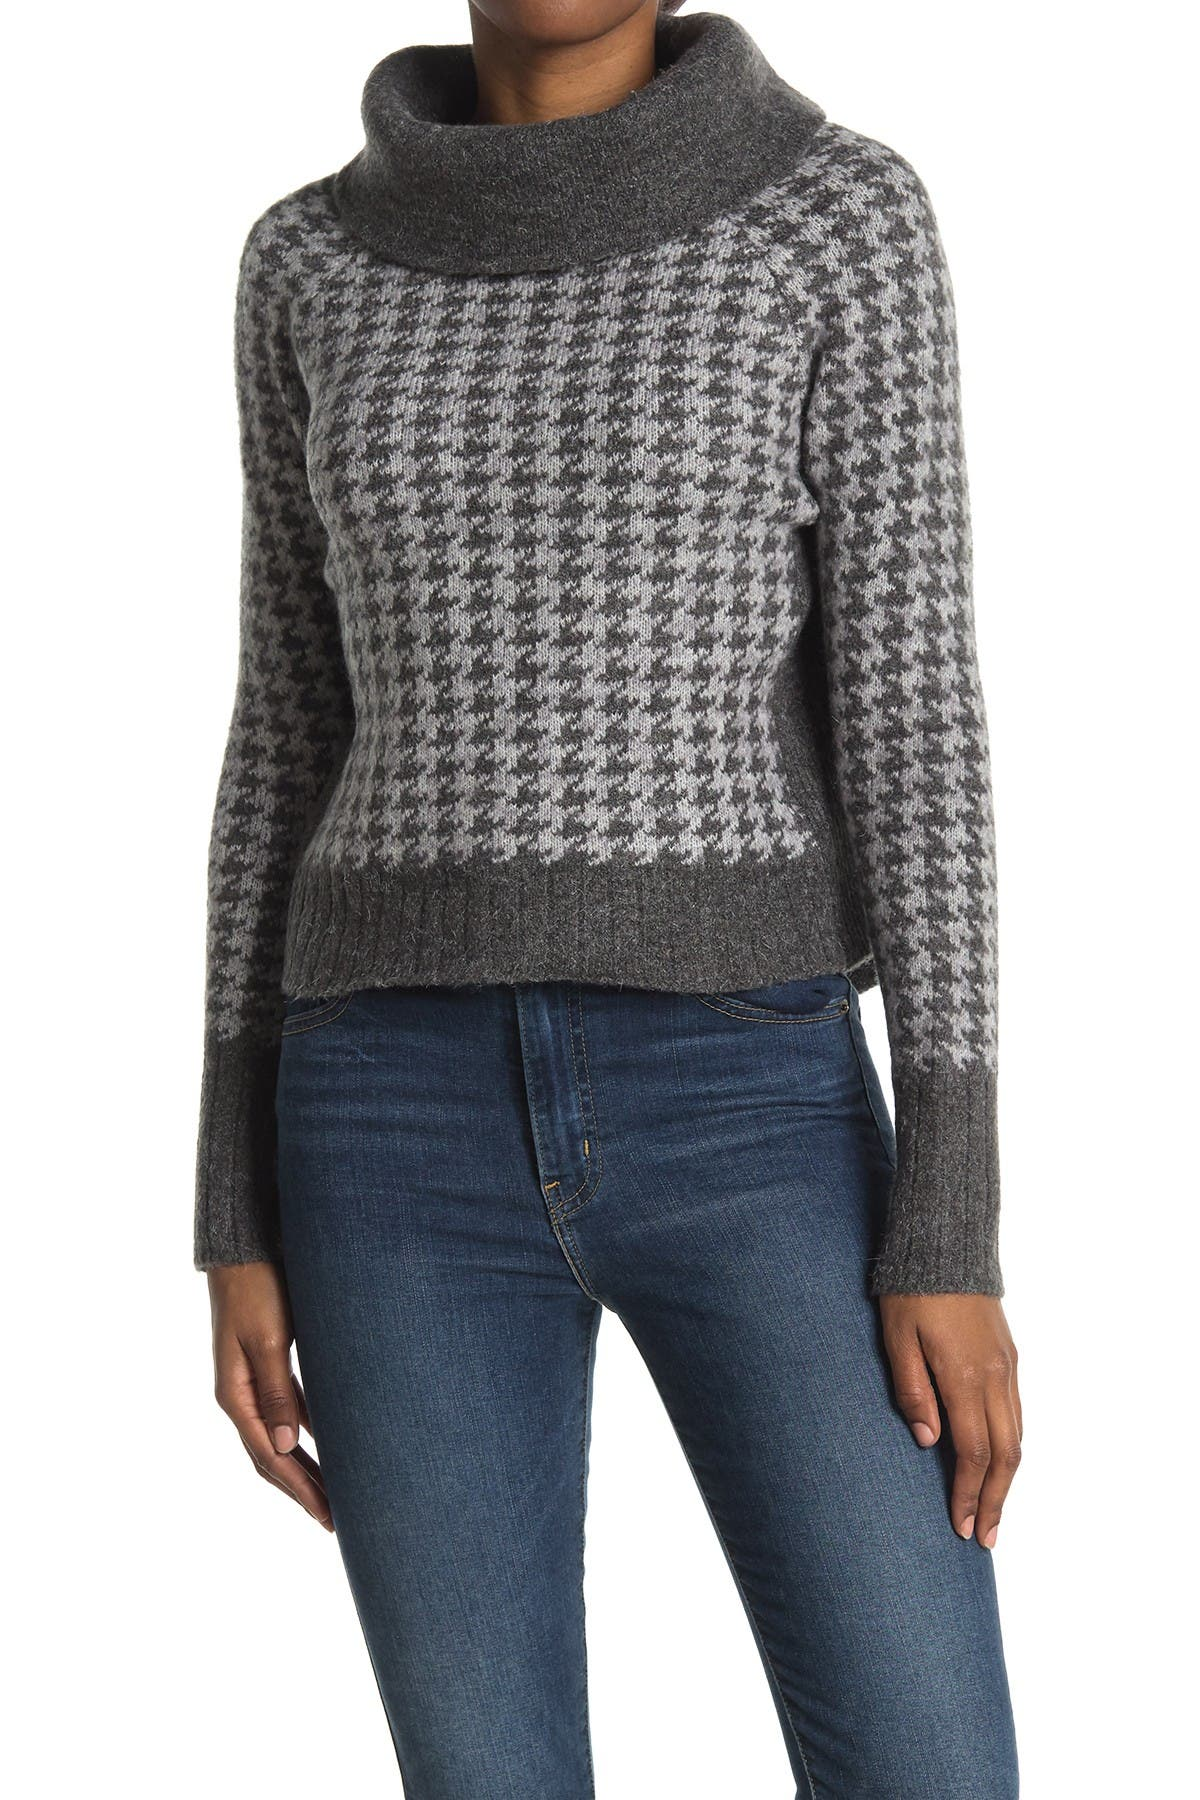 Image of Cloth By Design Houndstooth Plush Turtleneck Sweater